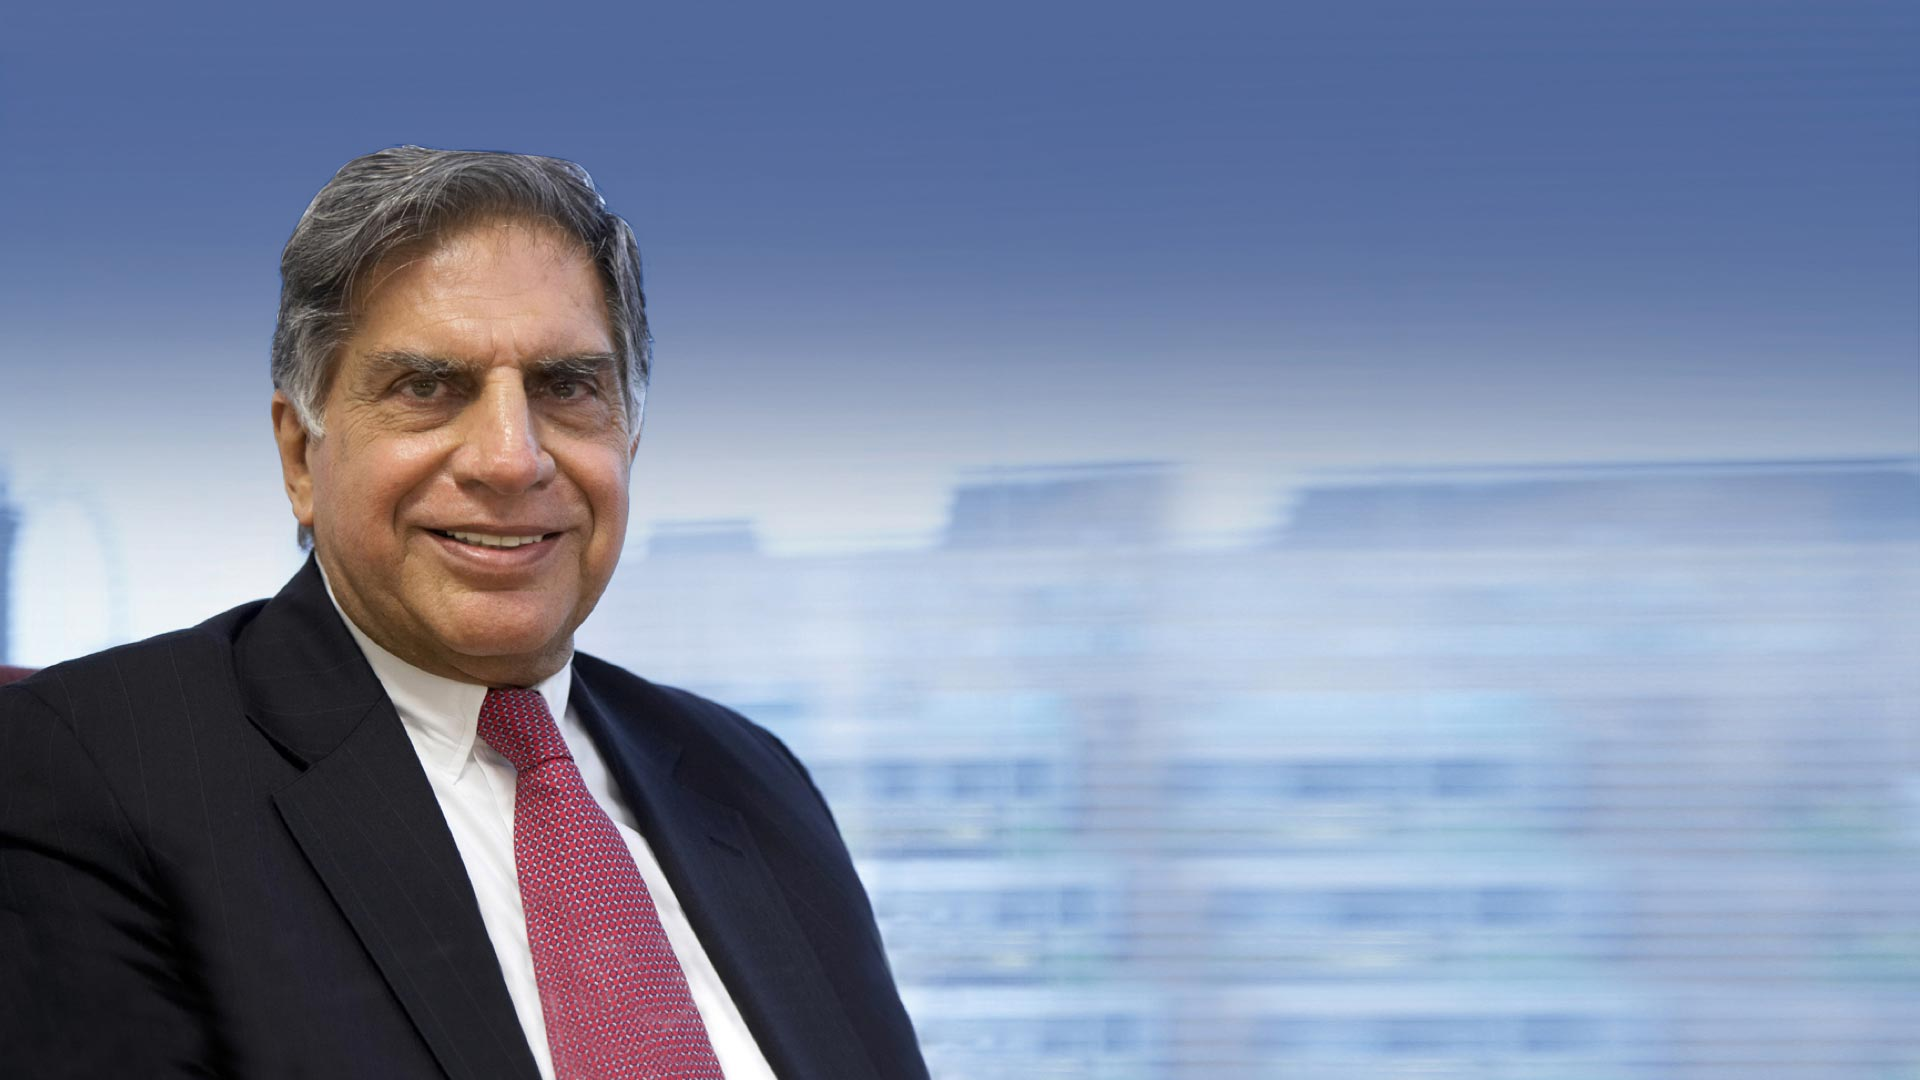 10 Interesting facts about Ratan Tata that you should know